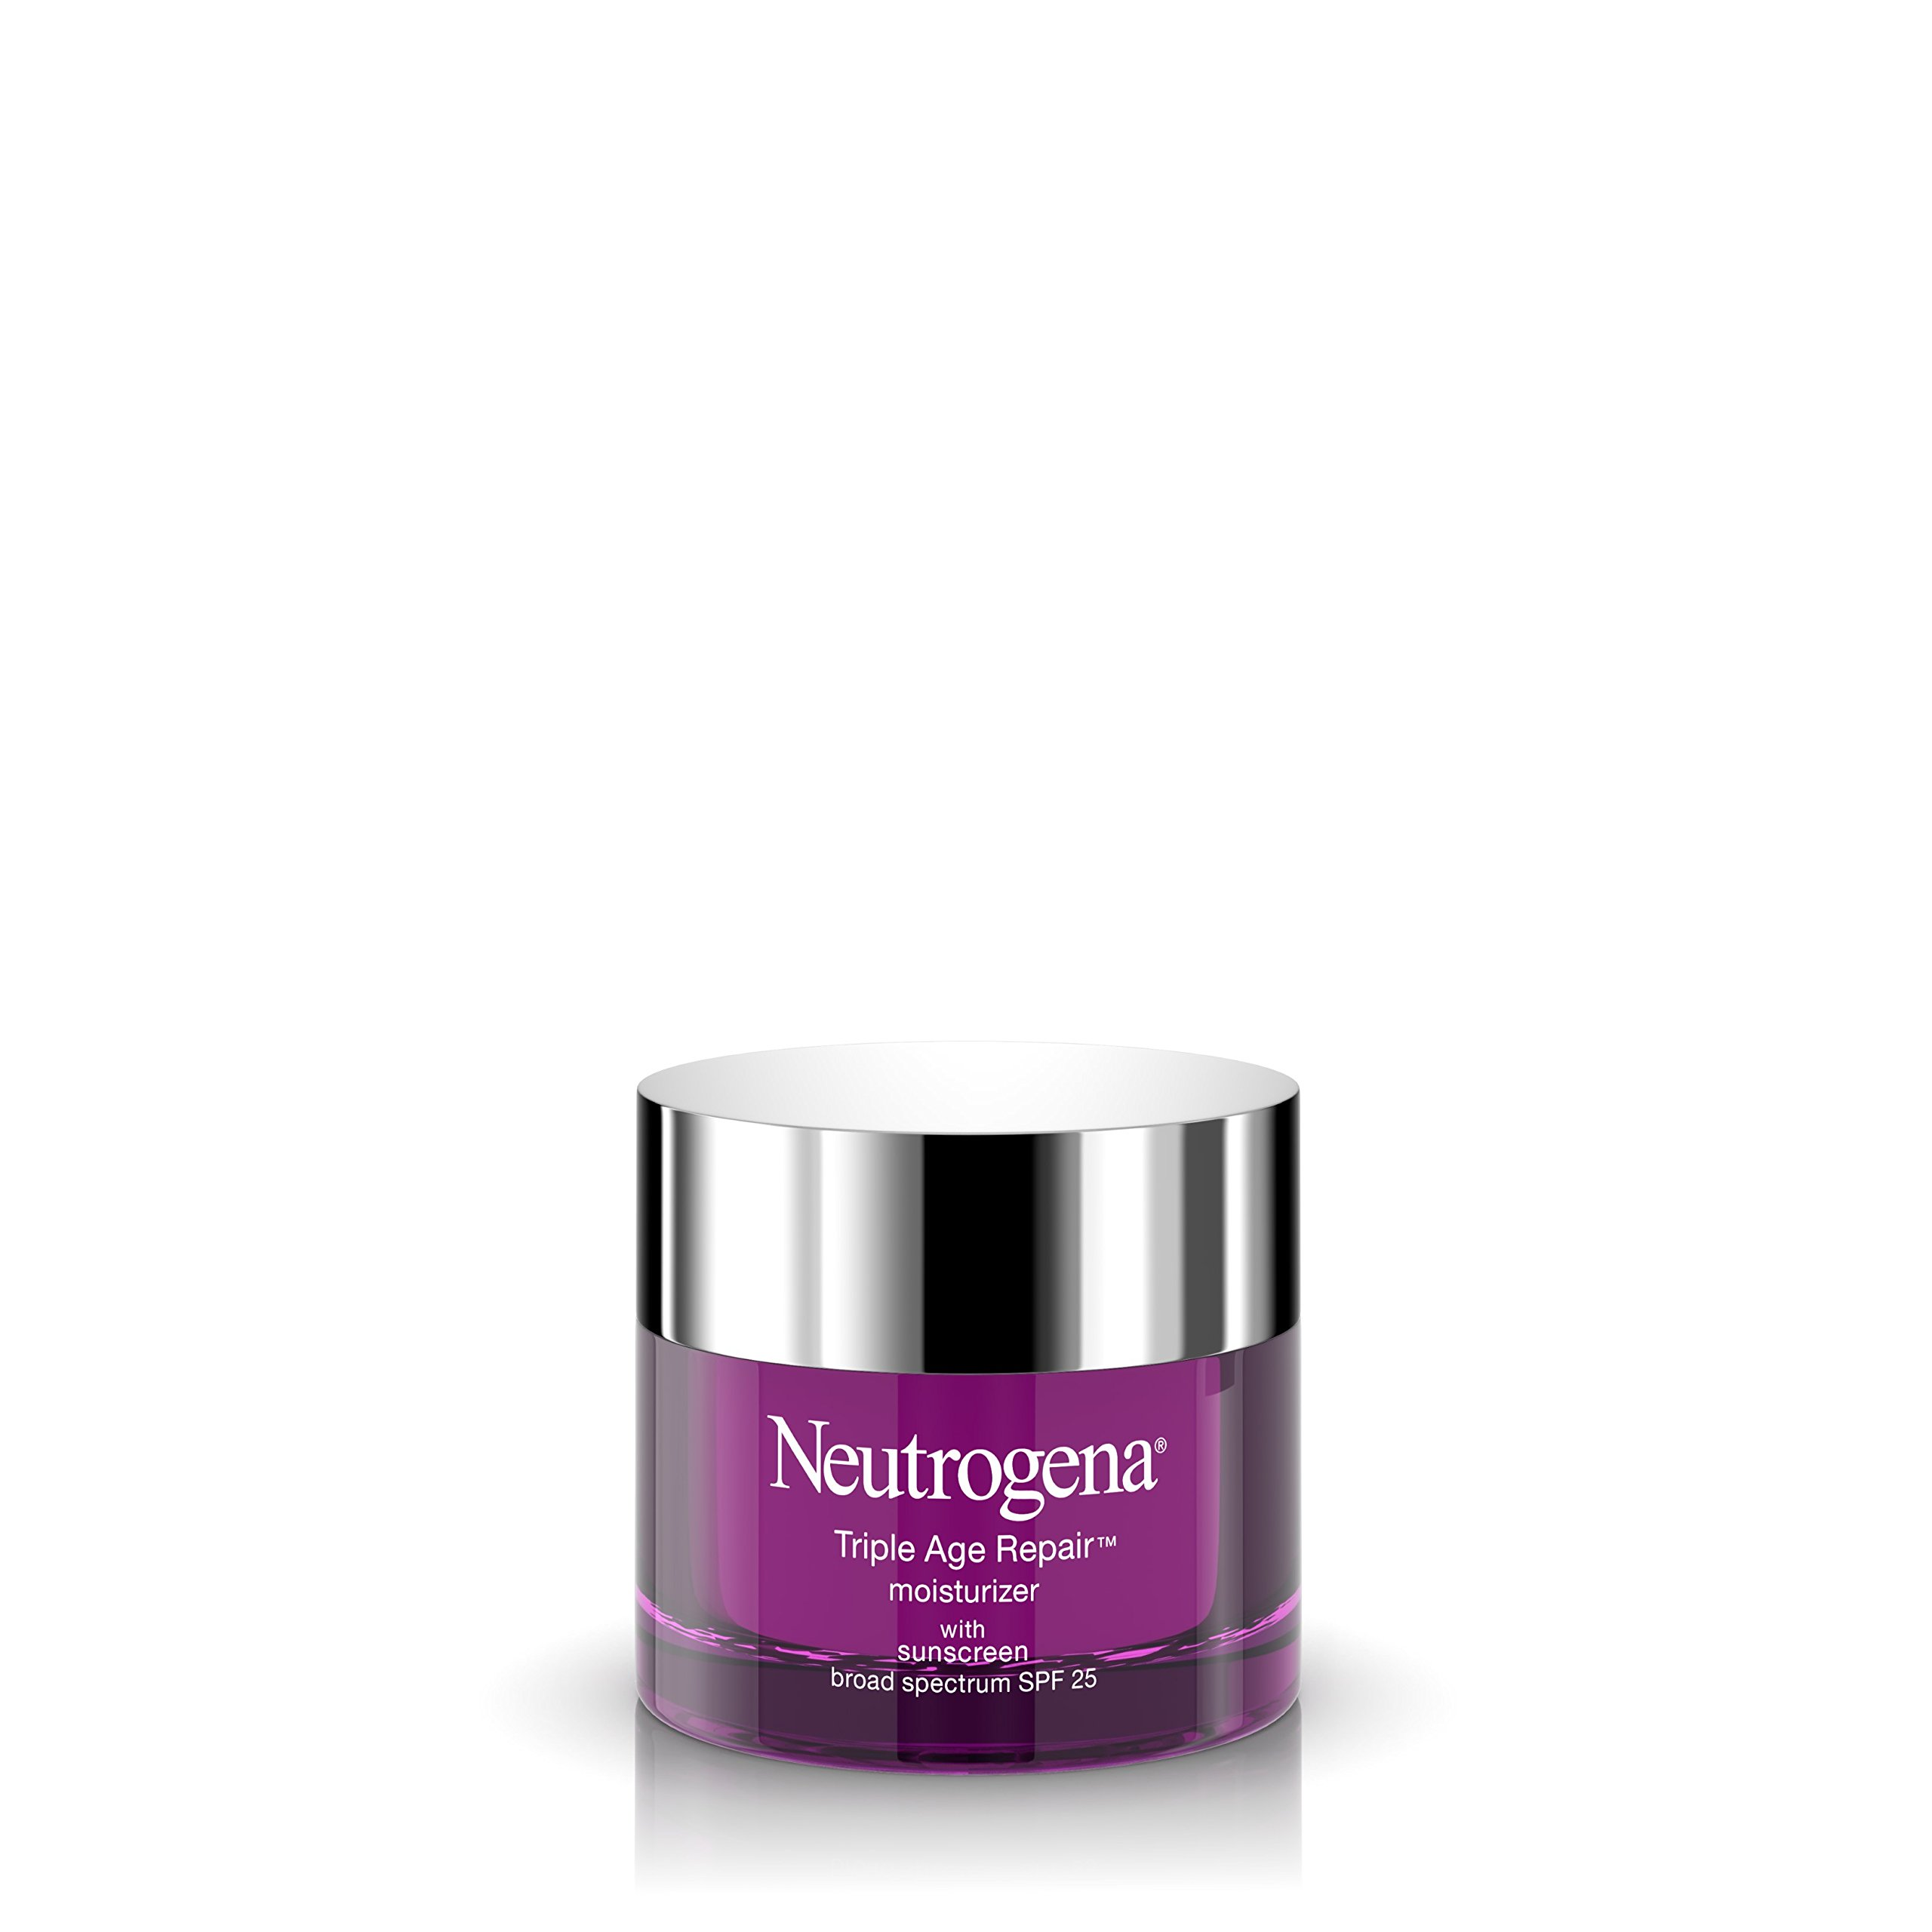 Neutrogena Triple Age Repair Anti-Aging Face Moisturizer with SPF 25 Sunscreen & Vitamin C, Dark Spot Remover & Firming Face & Neck Cream with Glycerin & Shea Butter, 1.7 oz by Neutrogena